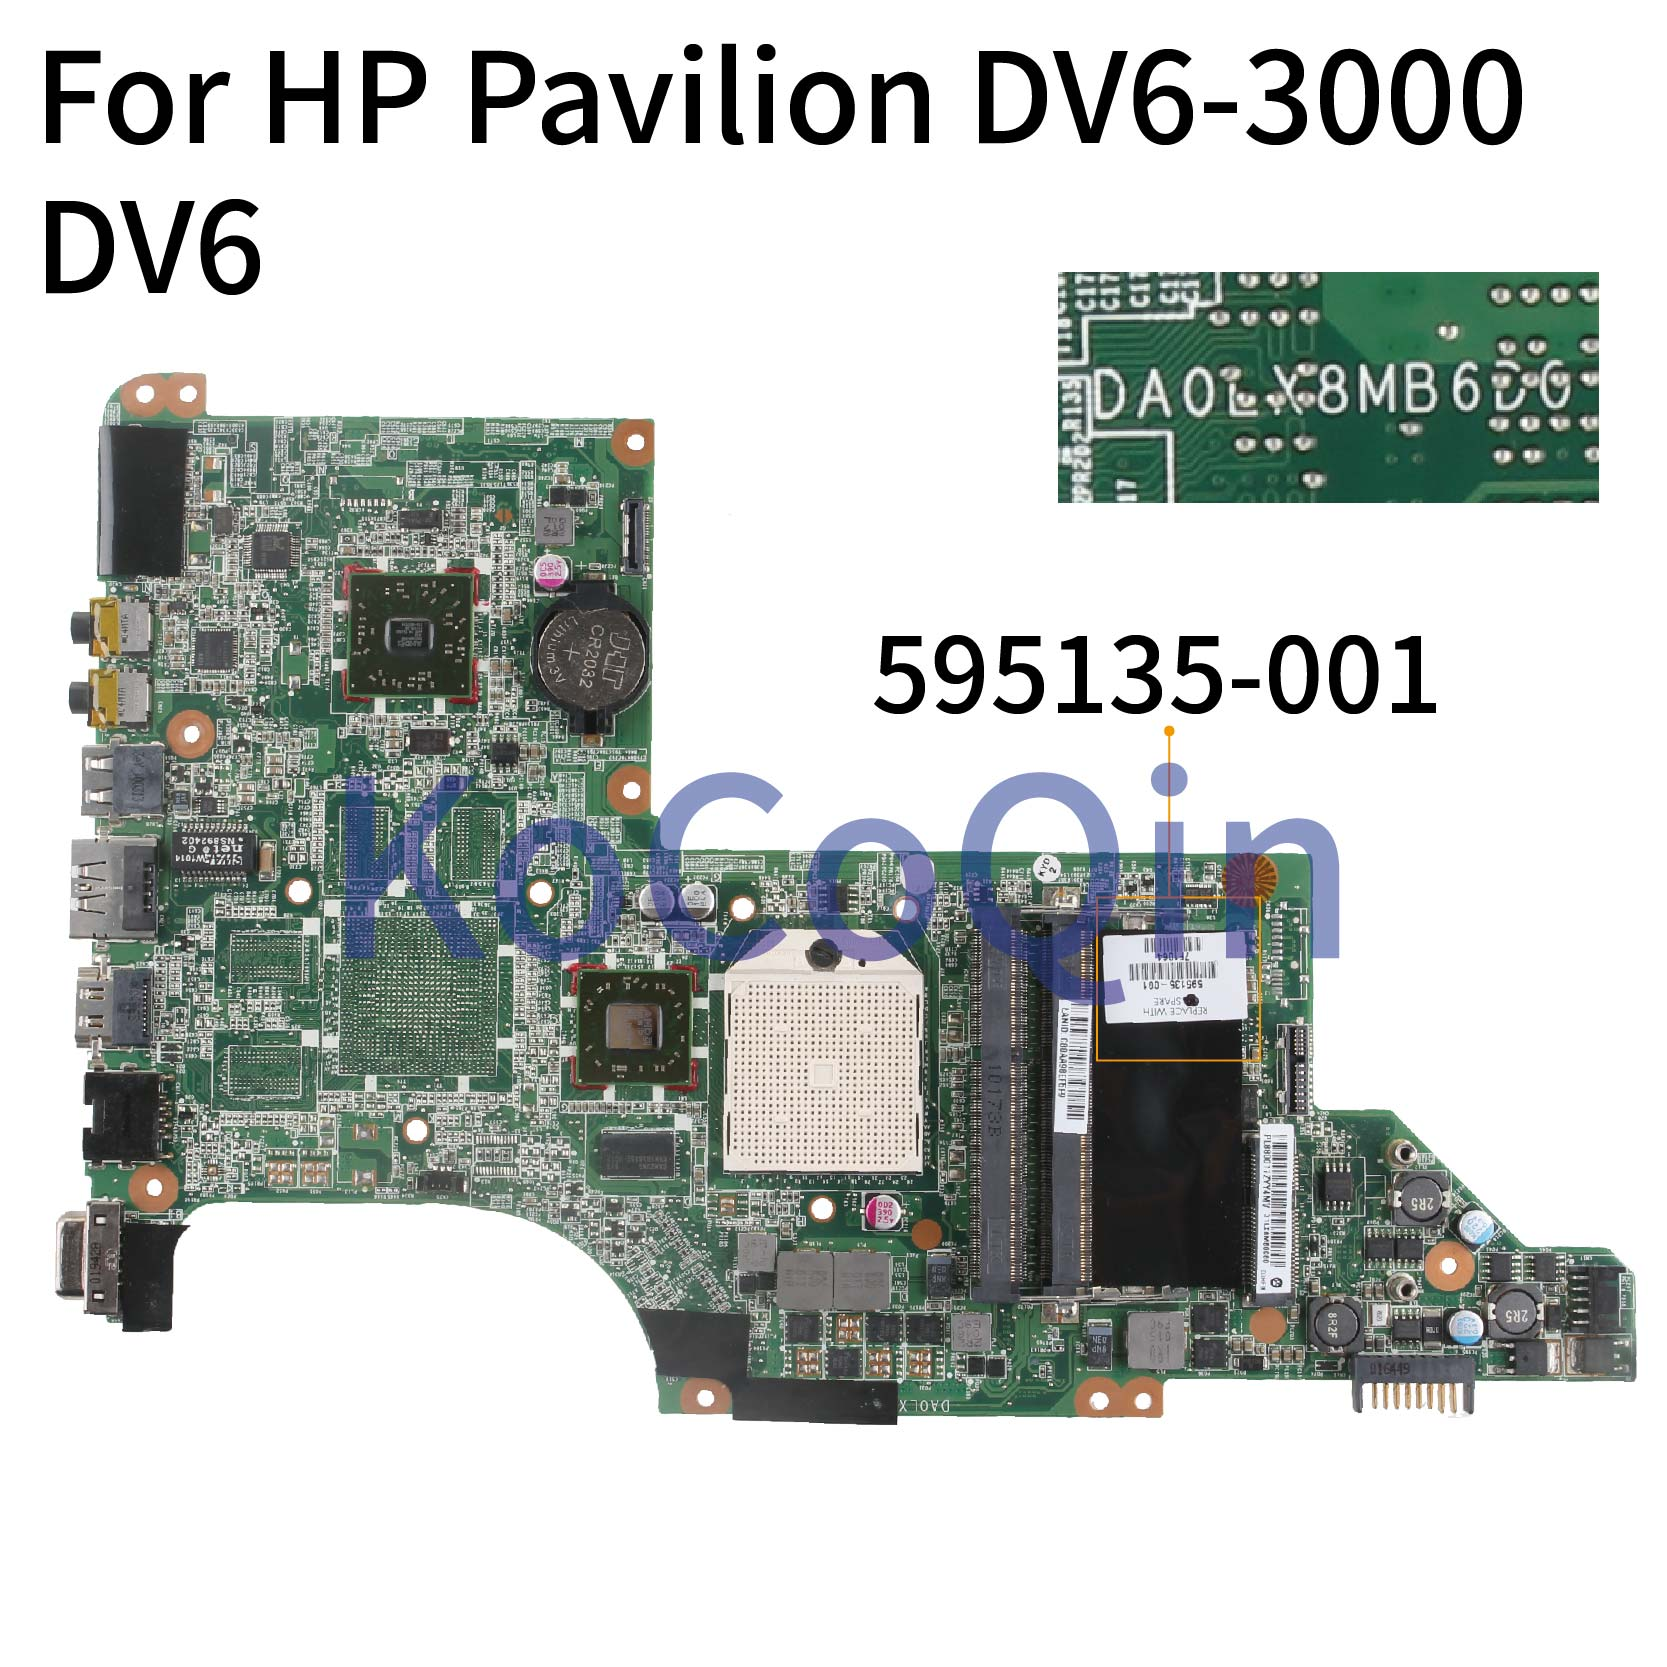 KoCoQin Laptop Motherboard For HP Pavilion DV6-3000 DV6 Mainboard 595135-001 595135-501 DAOLX8MB6D1